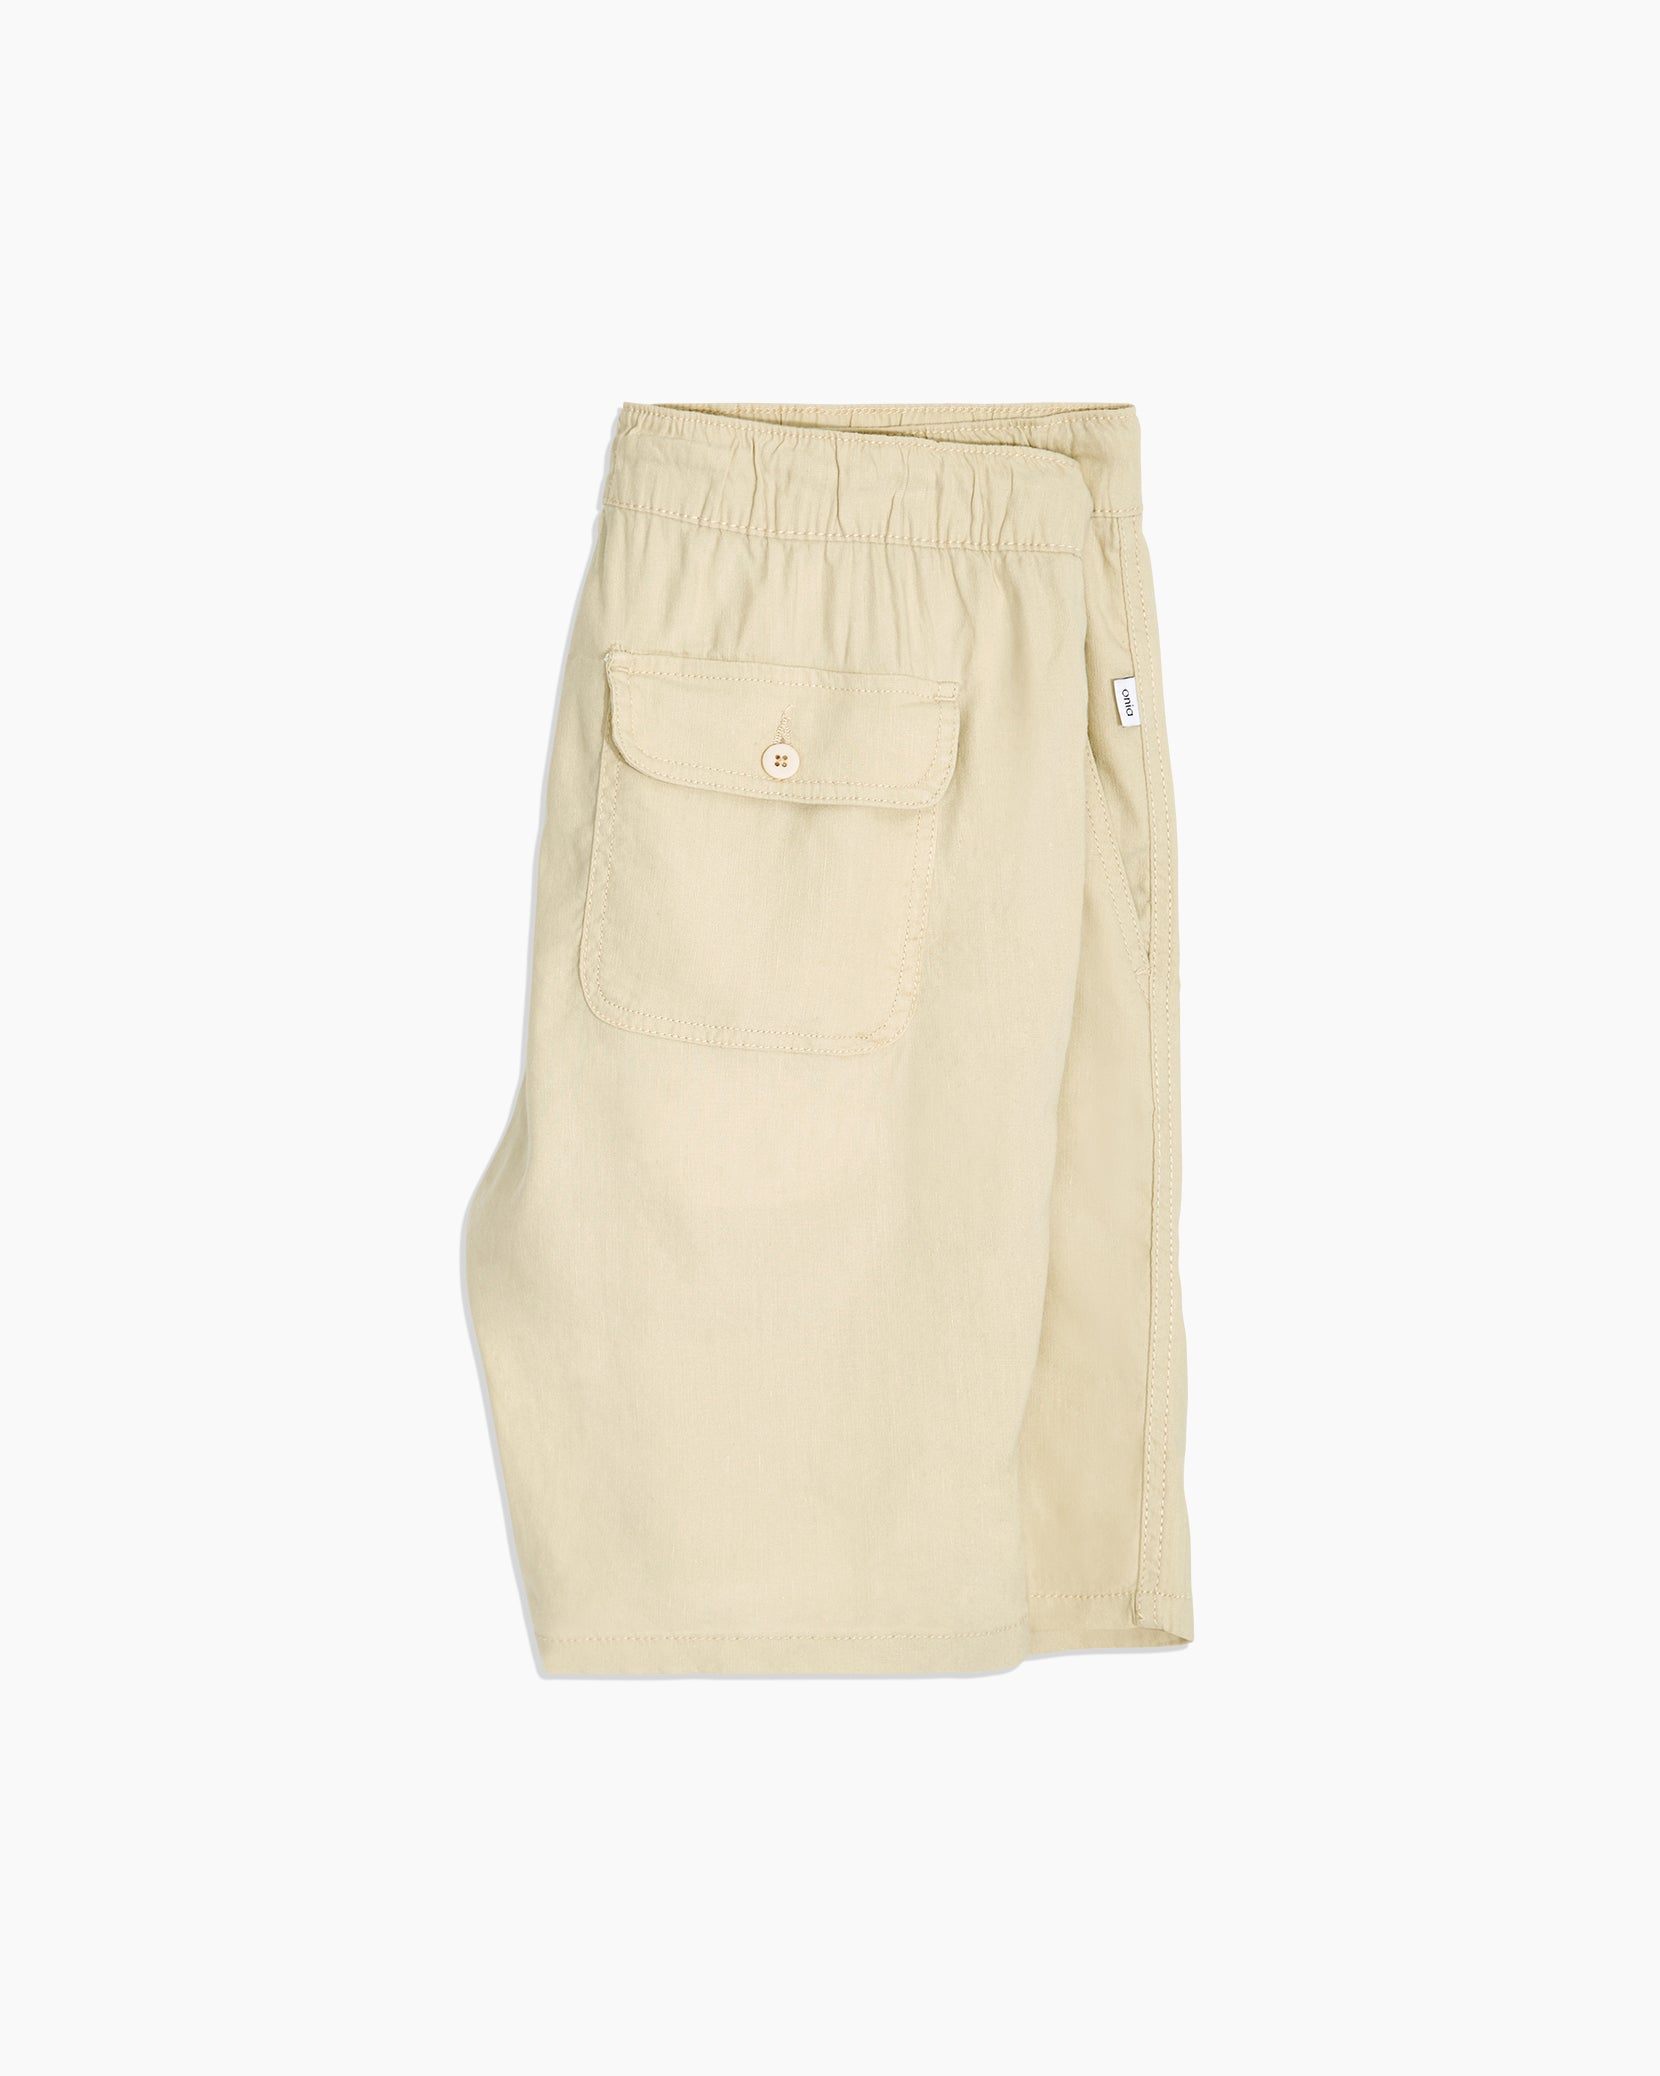 Noah Full Elastic Linen Short in Beige - 3 - Onia